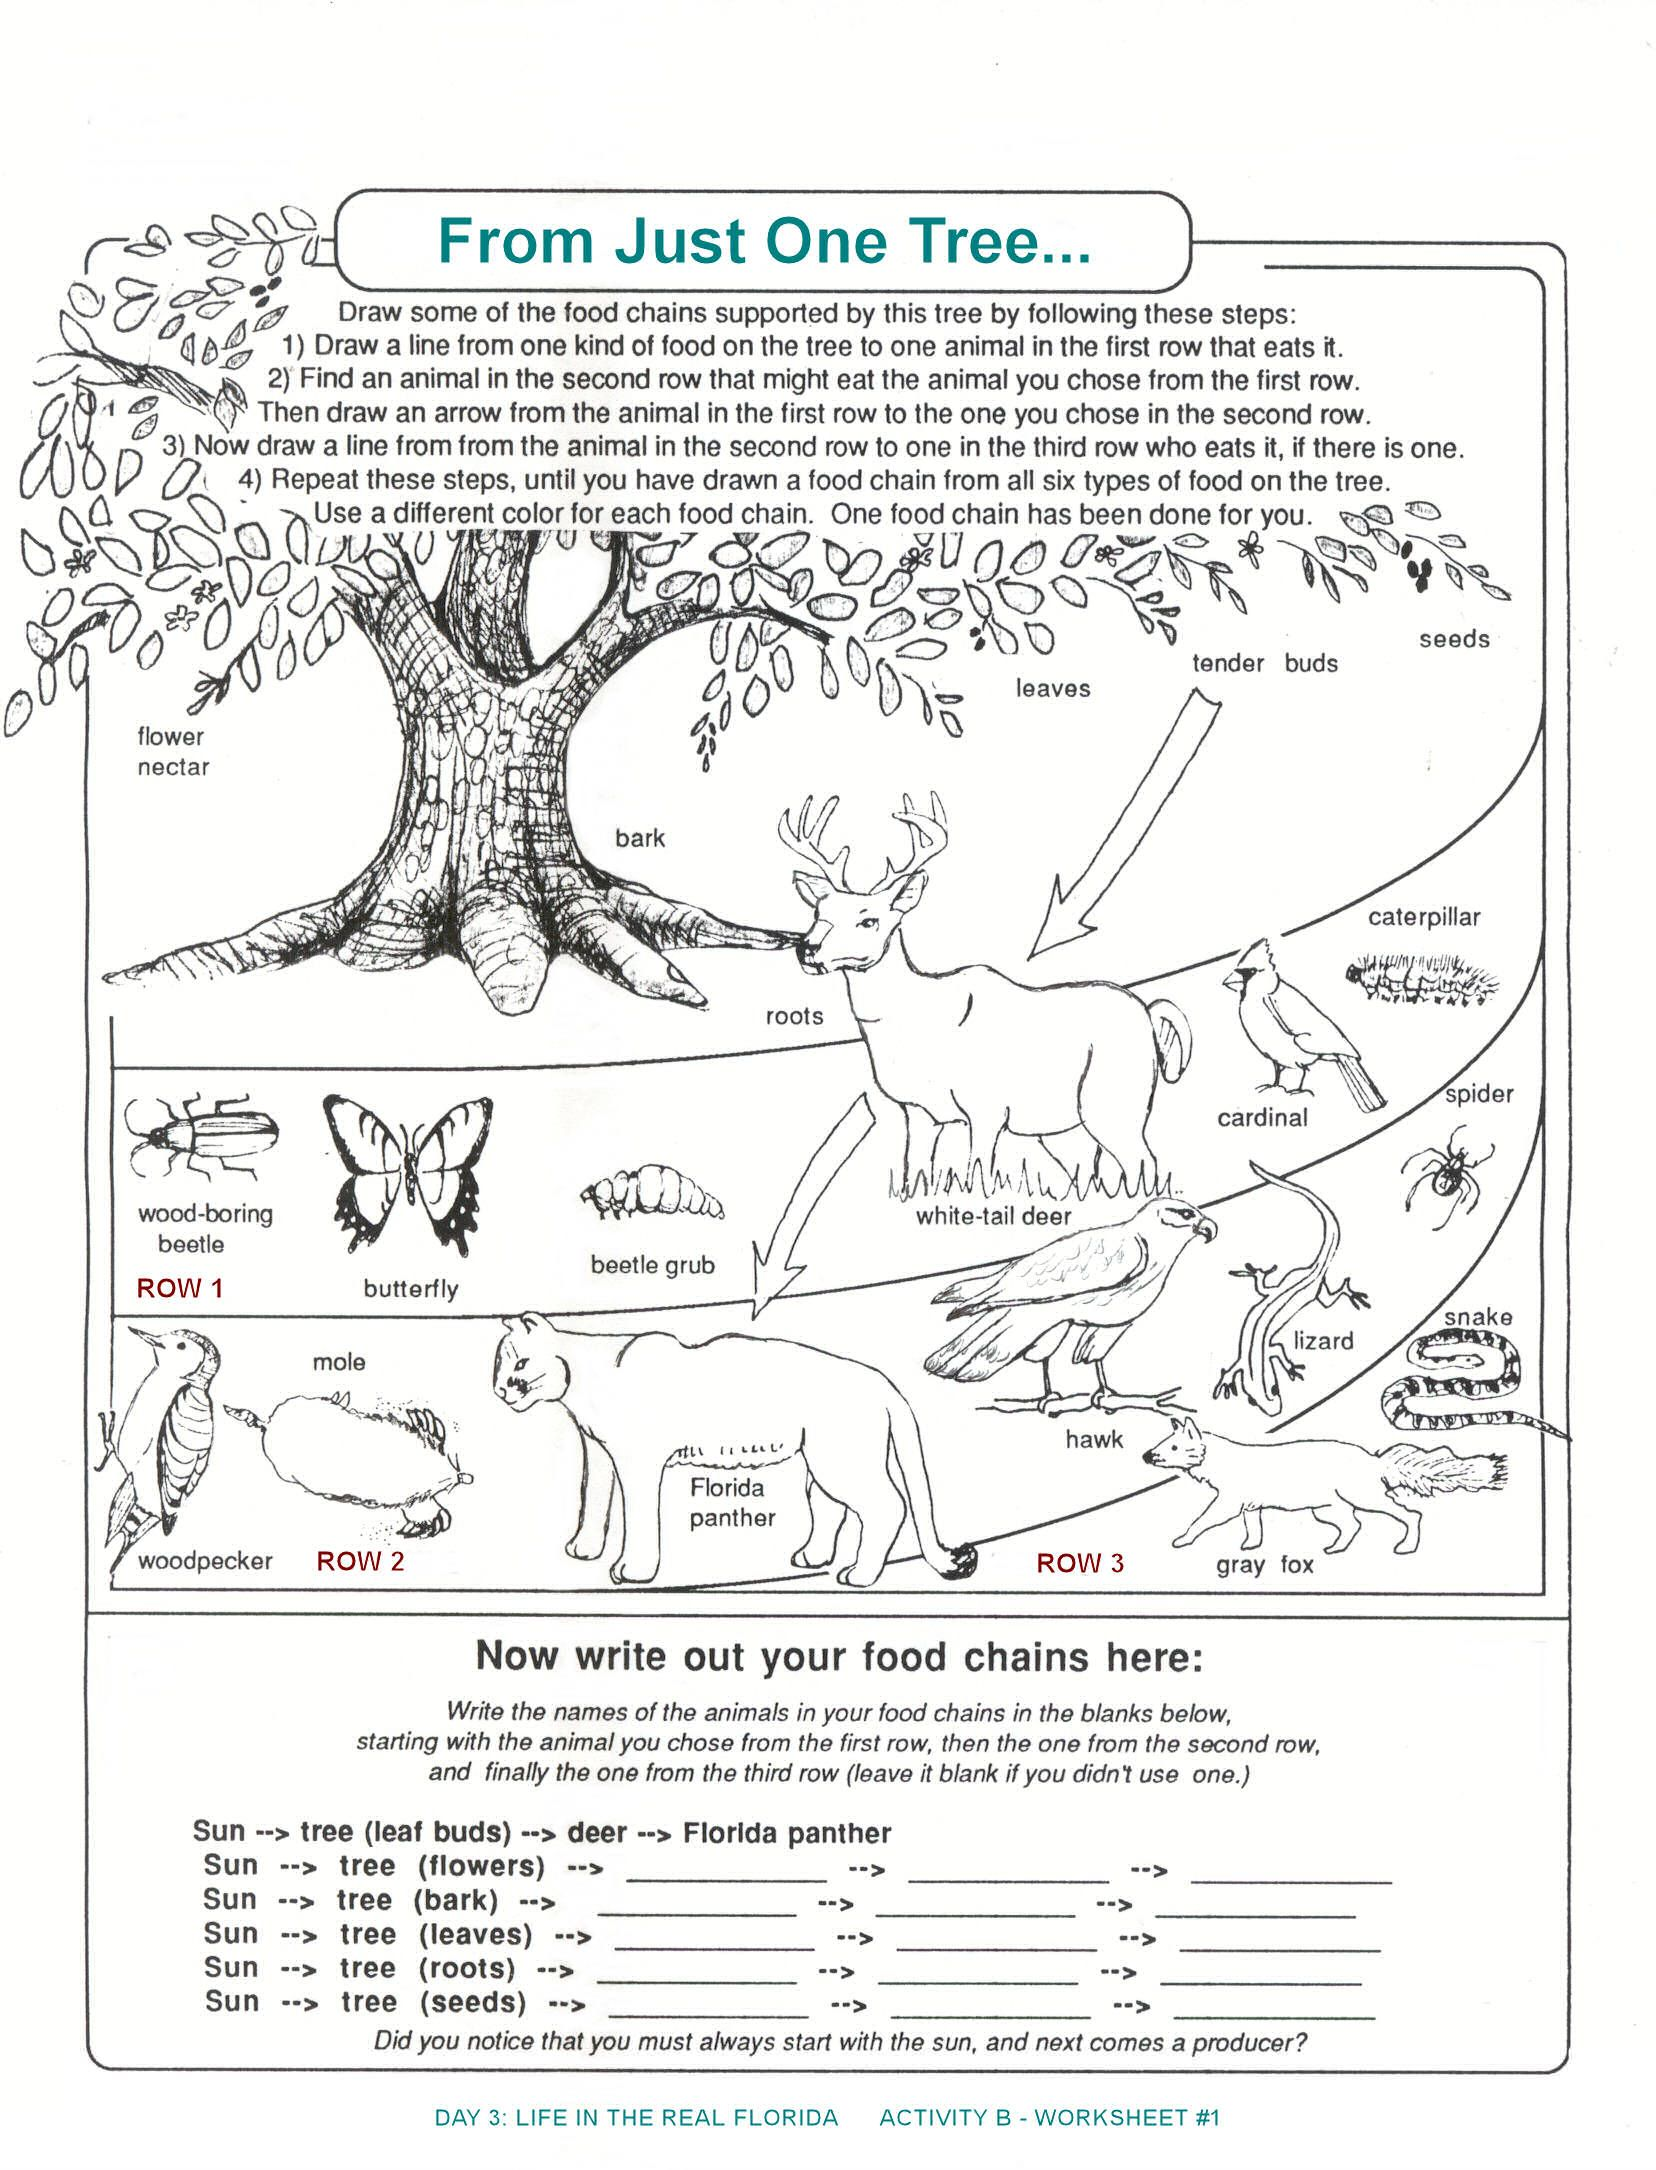 Uncategorized Food Chains And Food Webs Worksheet decomposers worksheets for kids archbold biological station ecological research conservation food webspermaculture